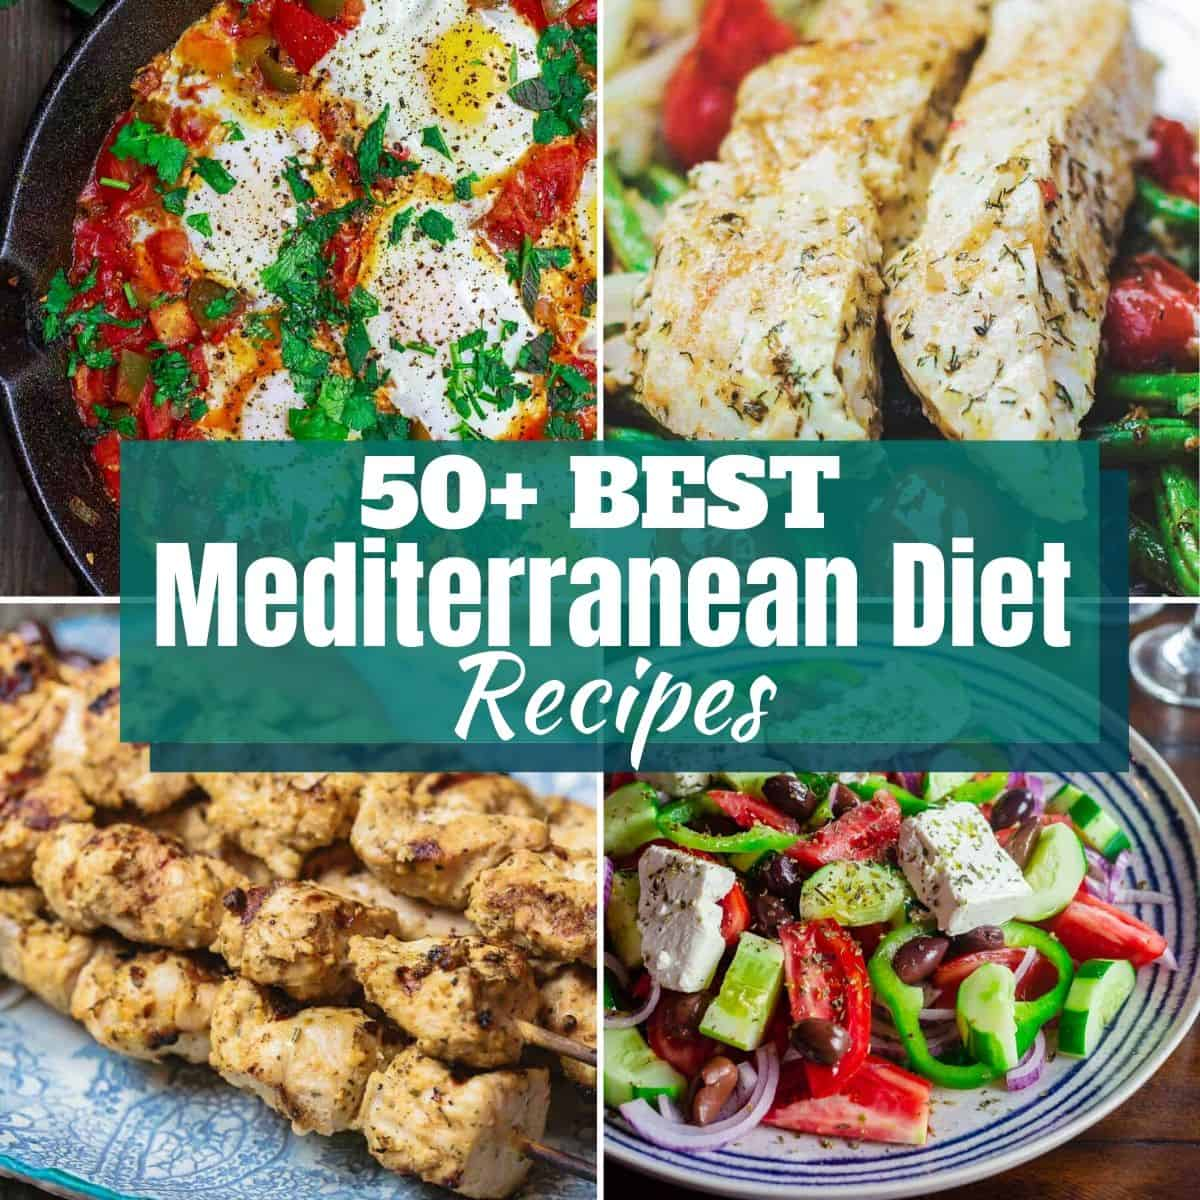 50+ Top Mediterranean Diet Recipes